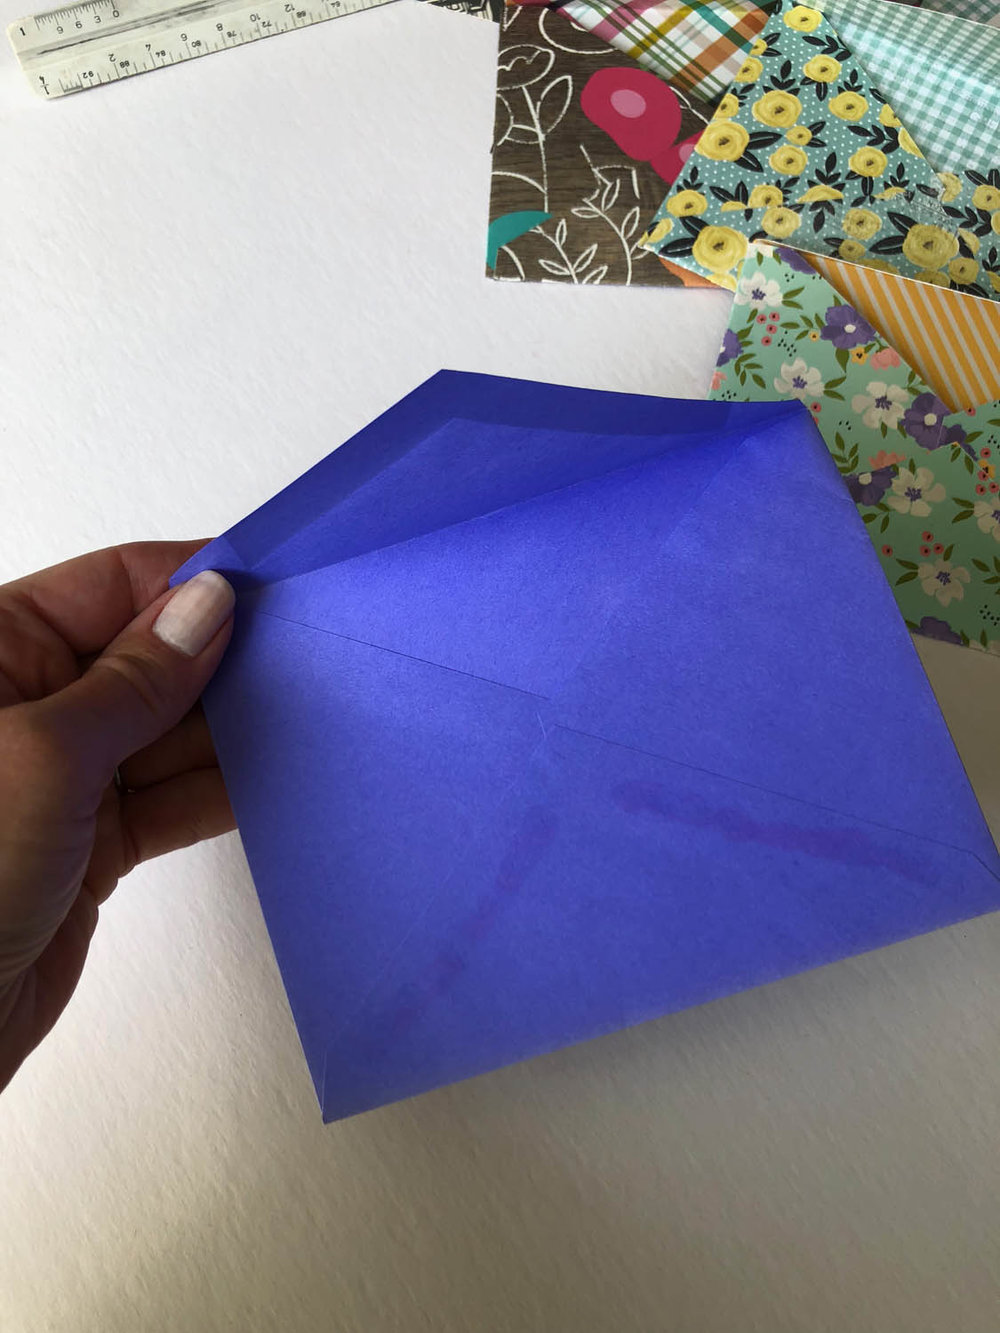 old envelope template for diy envelopes with scrapbook paper